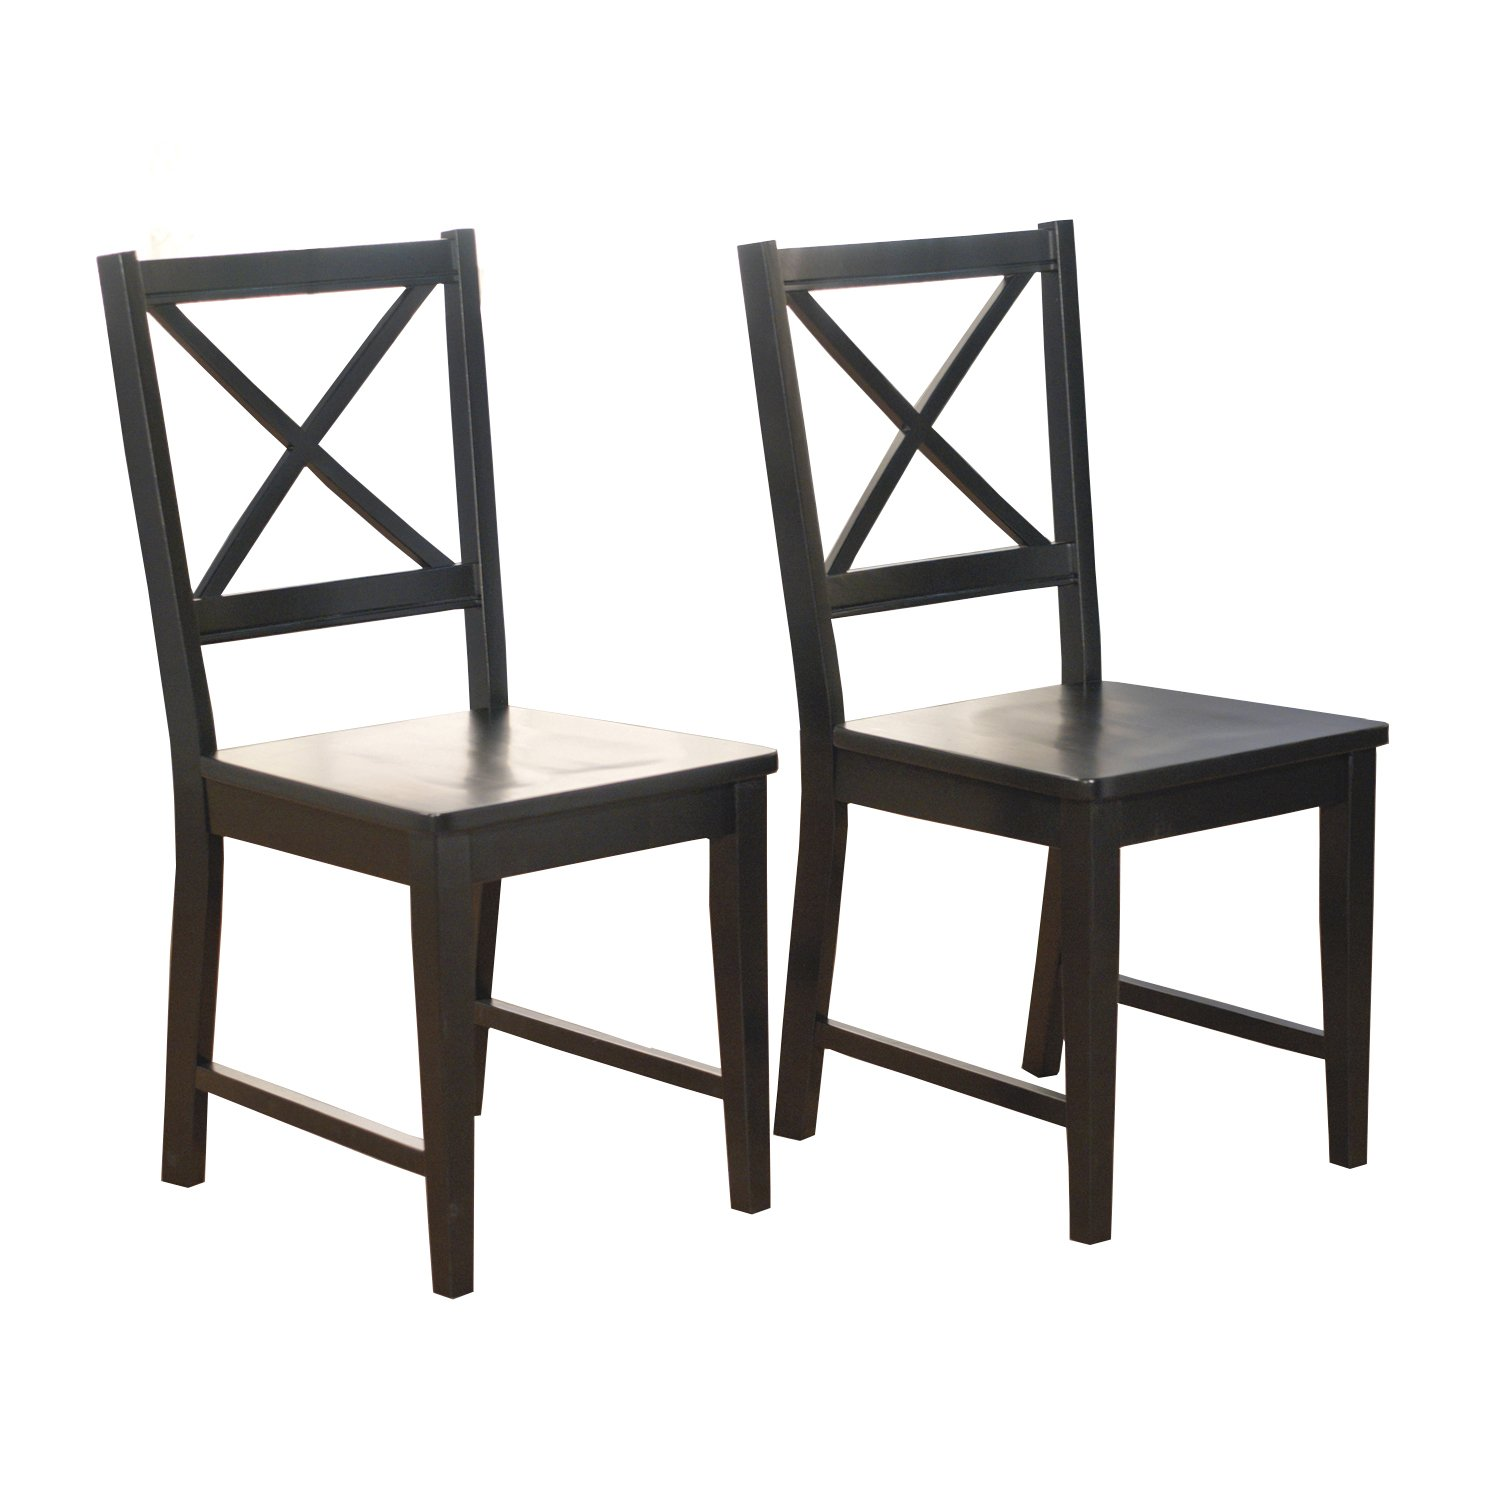 Target Marketing Systems Modern Cross Back Sitting Chair, Set of 2, Black by Target Marketing Systems